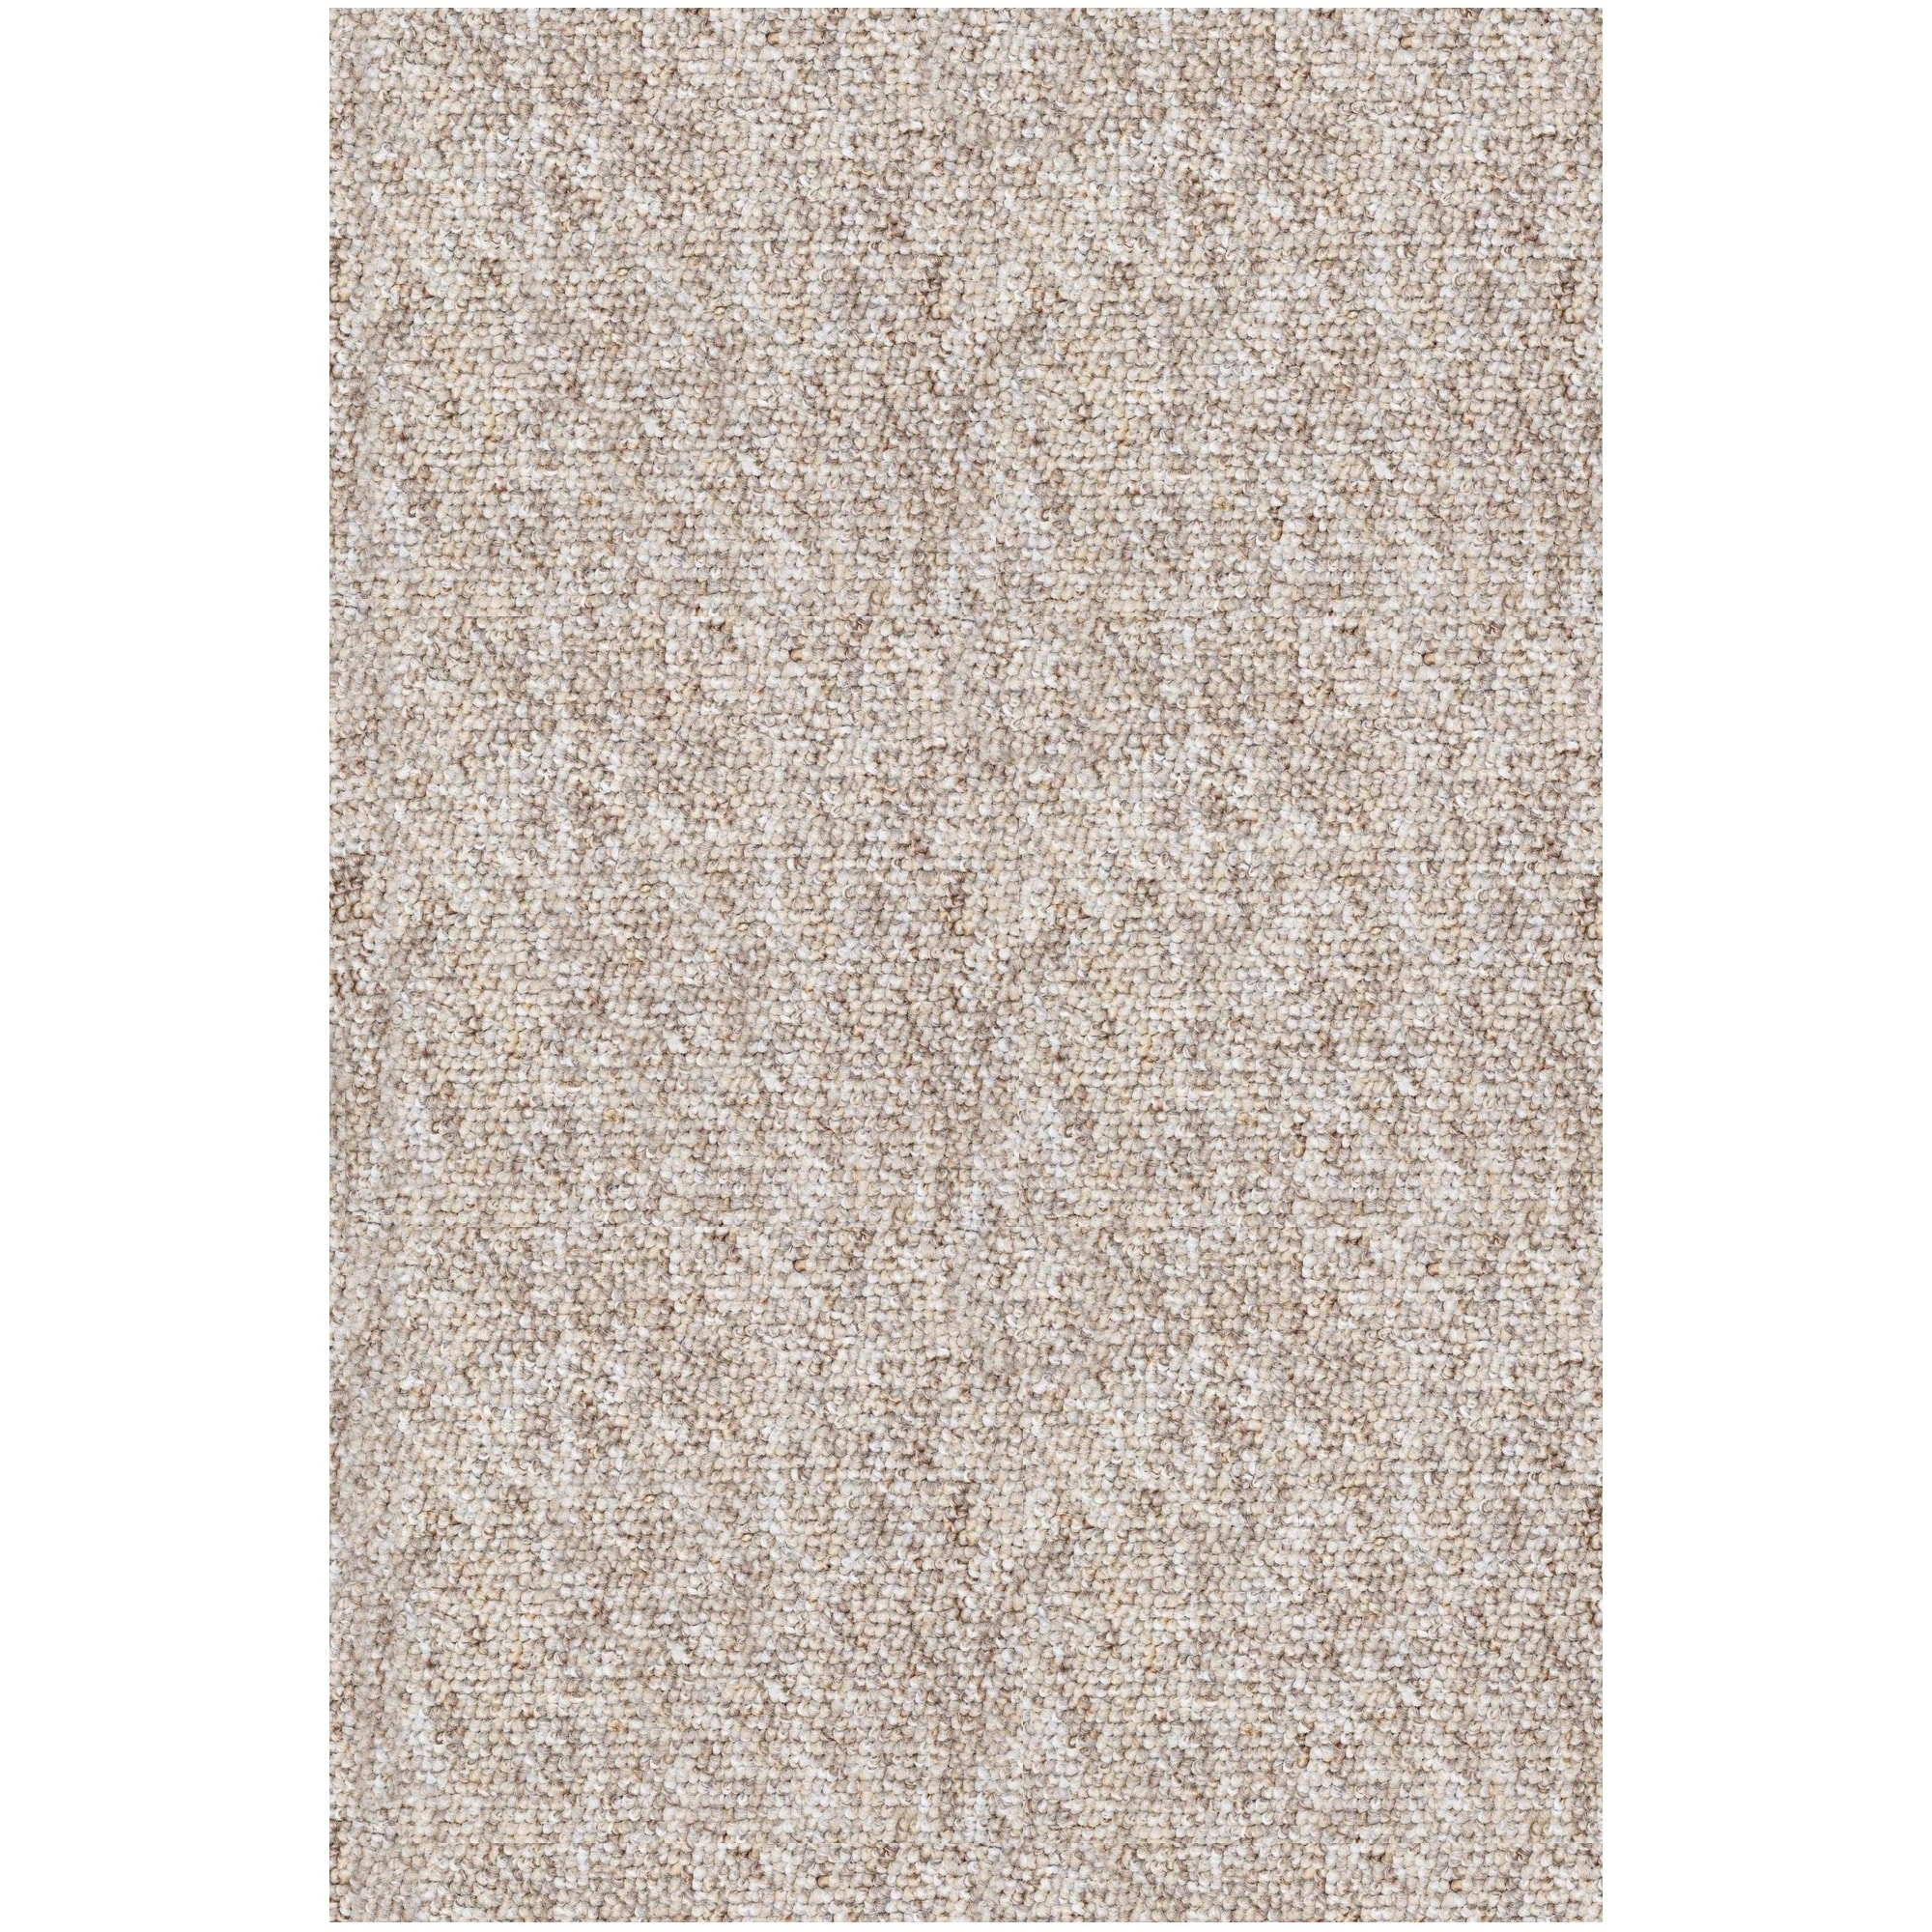 Shop Shaw Berber Superior Ivory Area Rug 9 X 12 On Sale Free